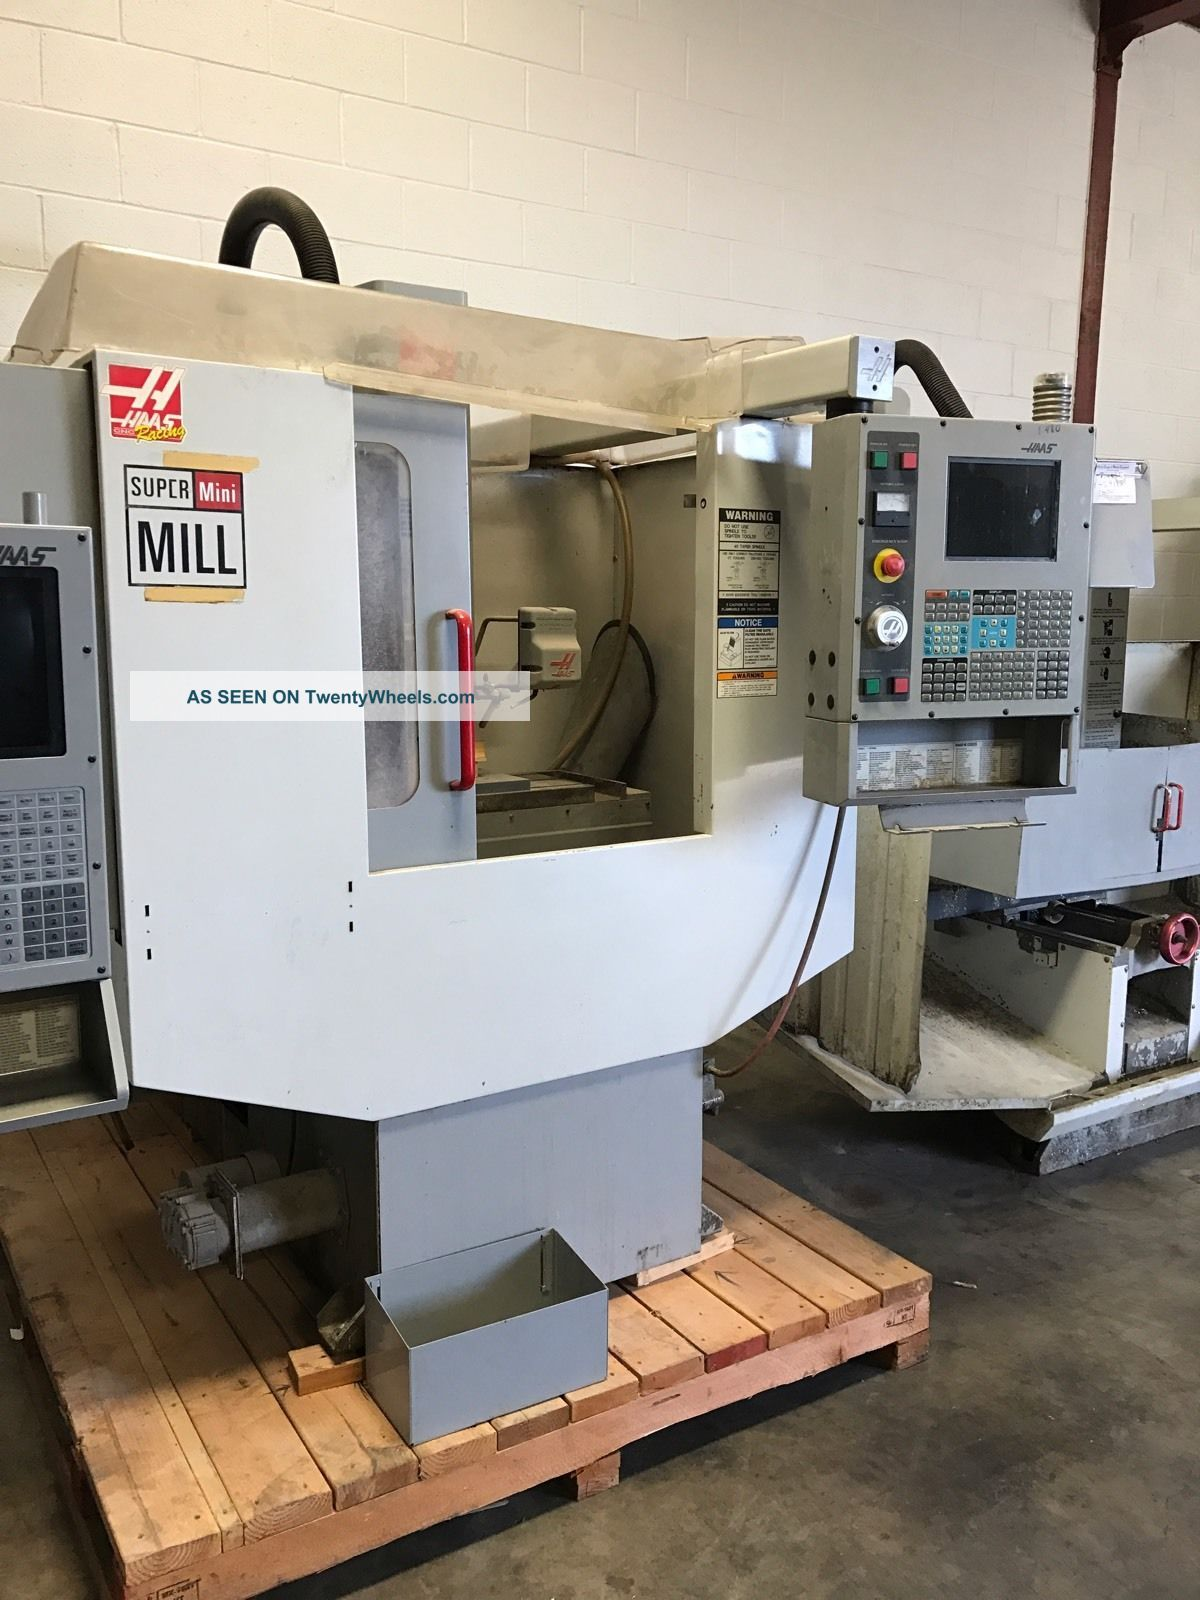 Haas Mini Mill Milling Machines photo